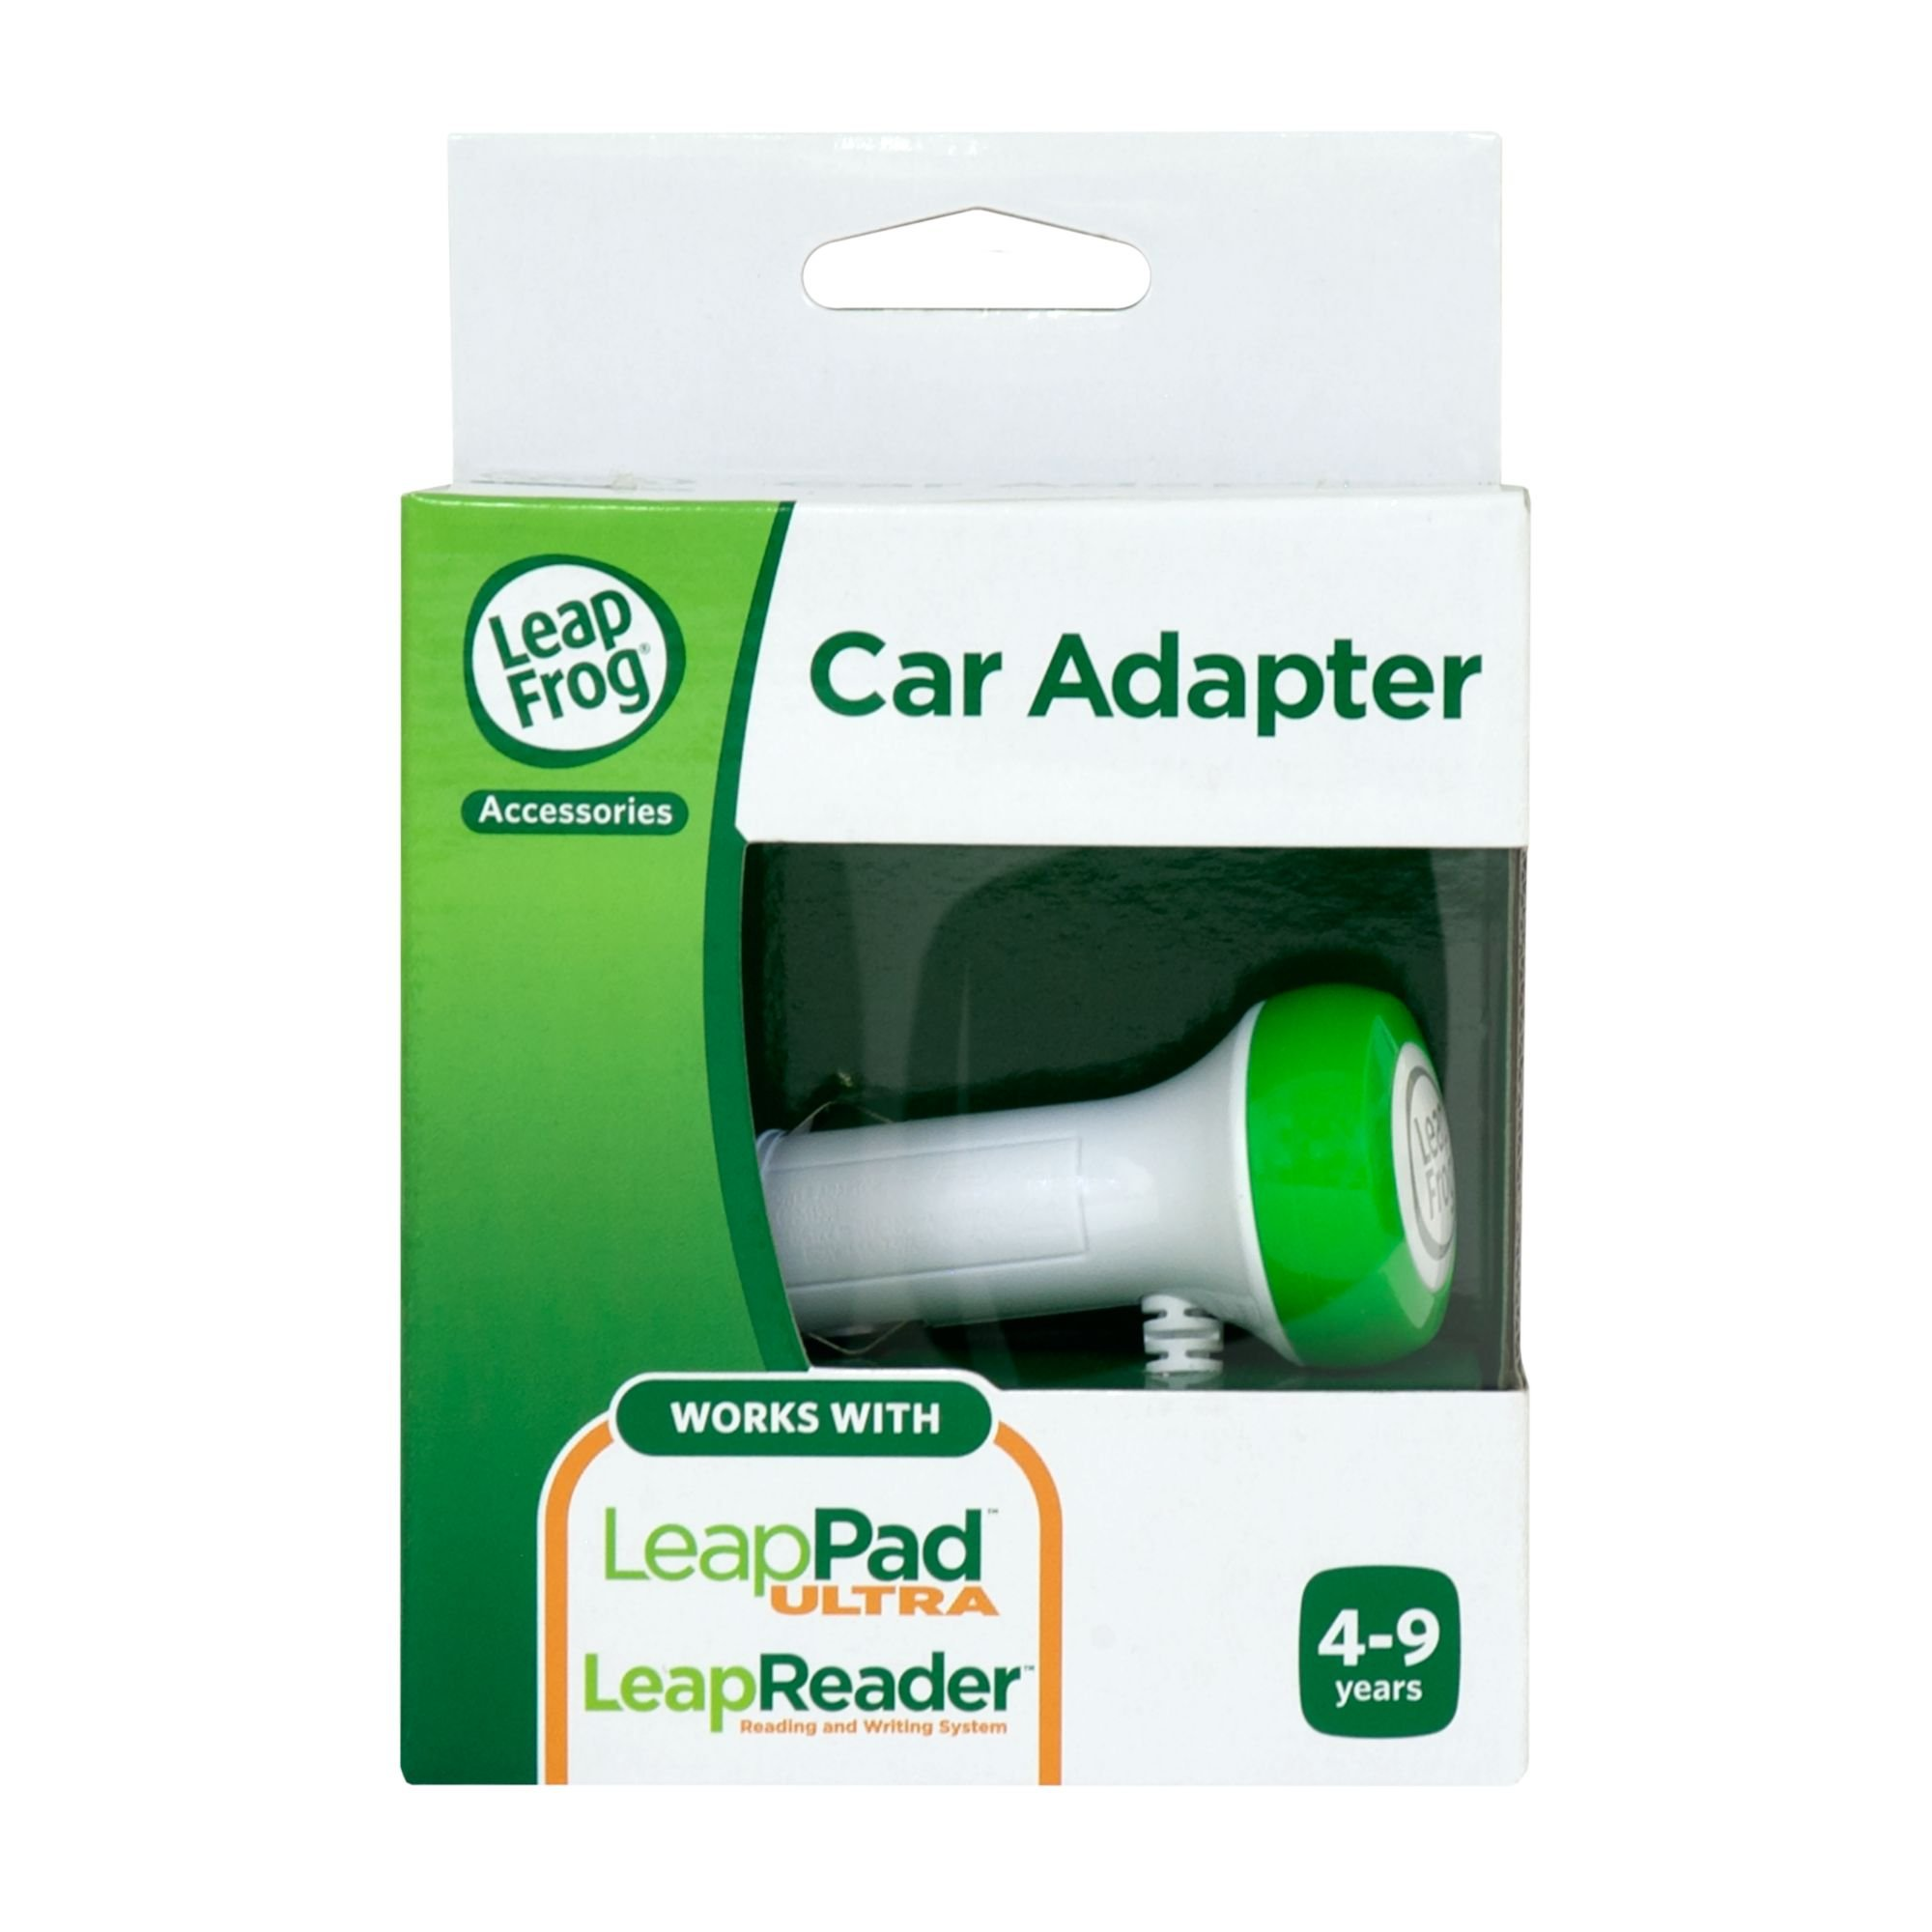 LeapFrog Car Adapter for LeapPad Ultra and LeapReader by LeapFrog (Image #2)